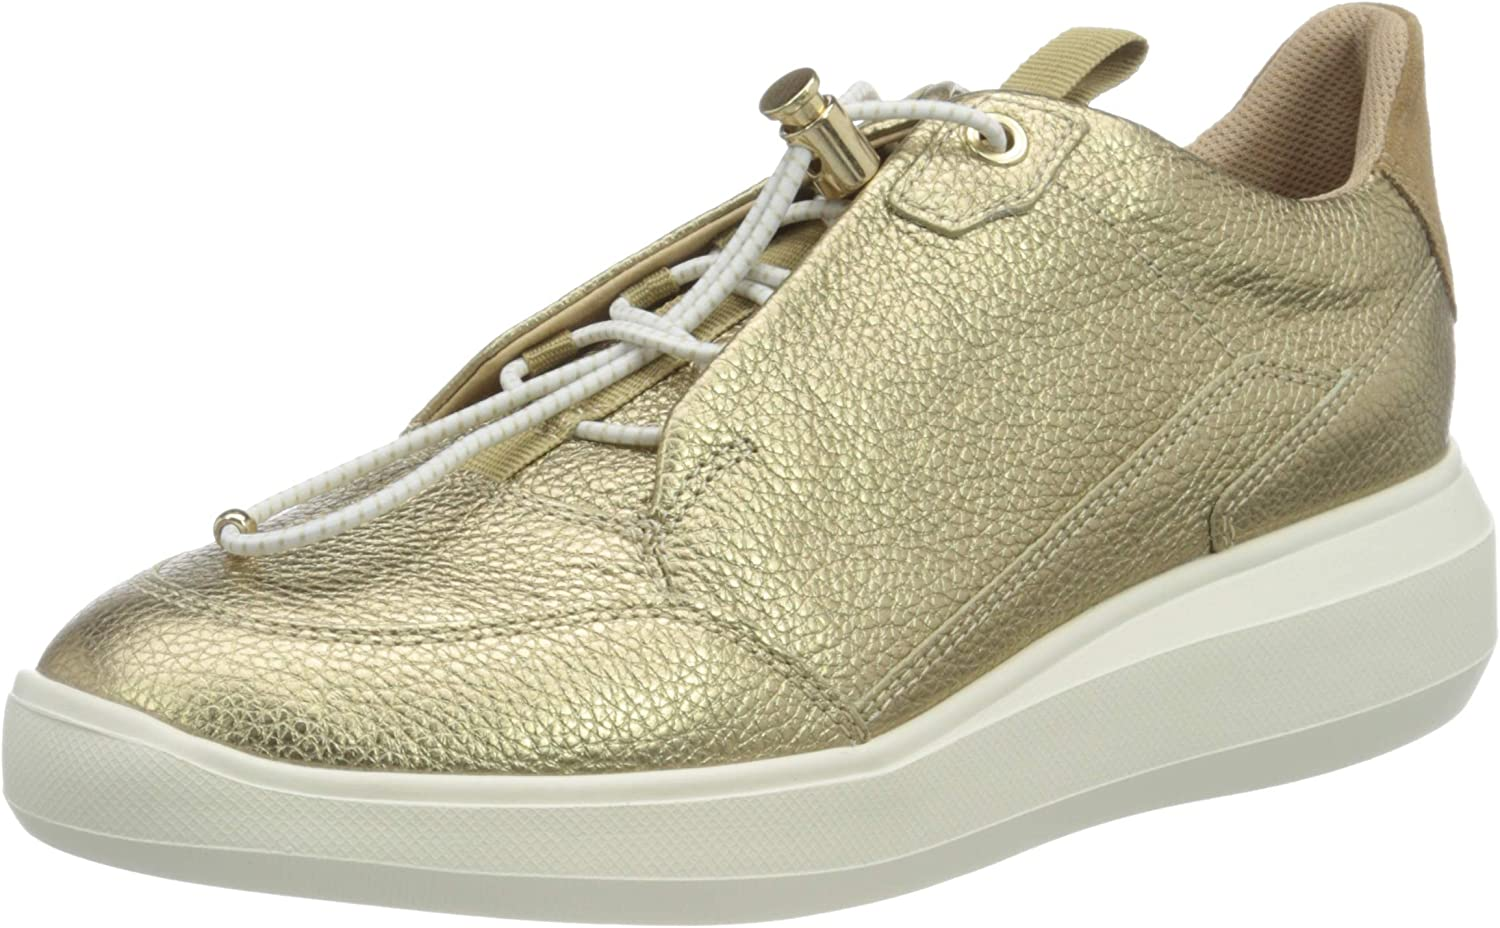 Geox Women's Low-top Sacramento Mall Trainers Sneaker Direct sale of manufacturer